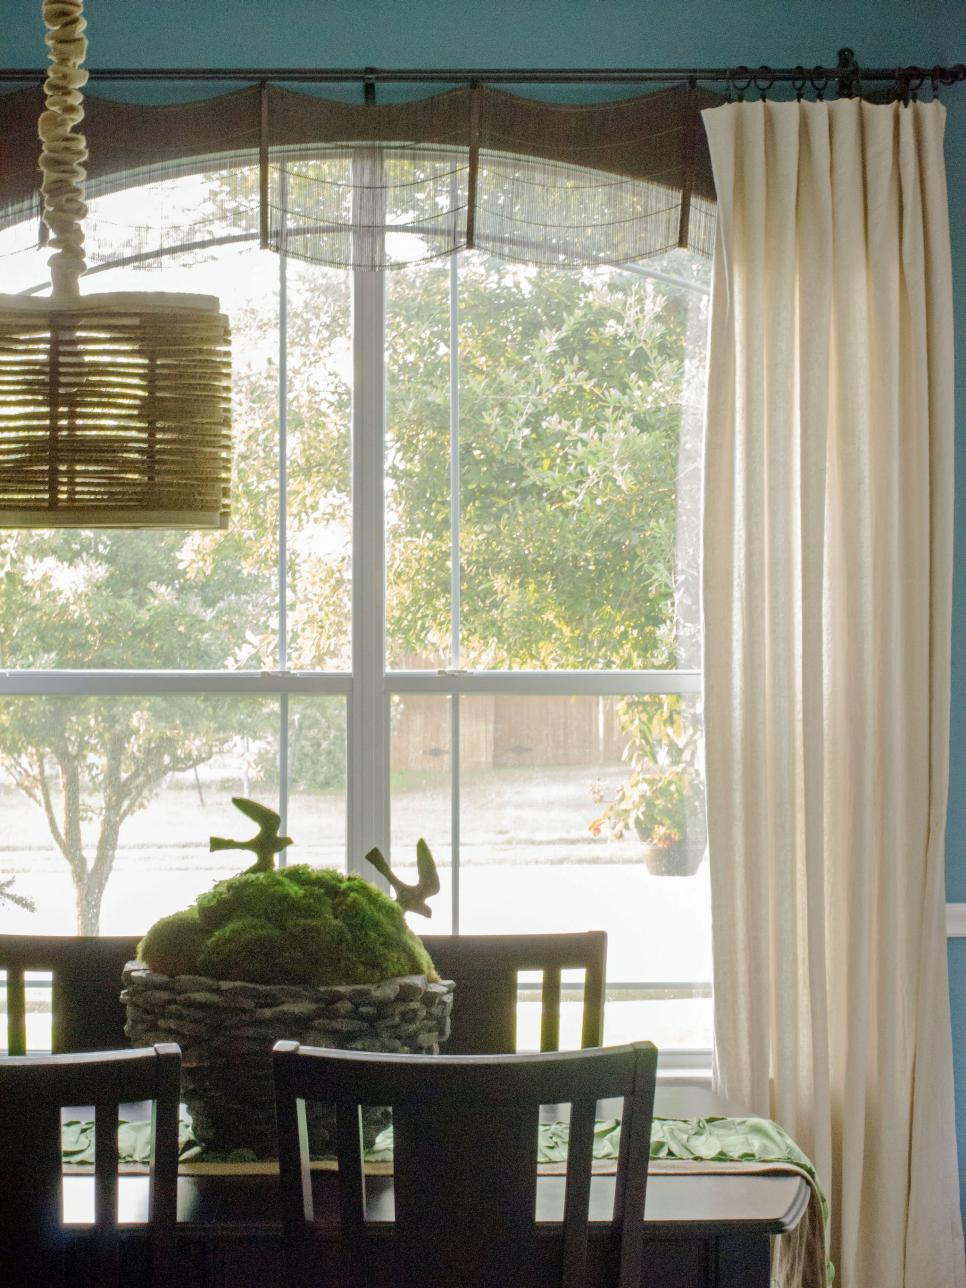 Window treatment ideas hgtv for What is a window treatment